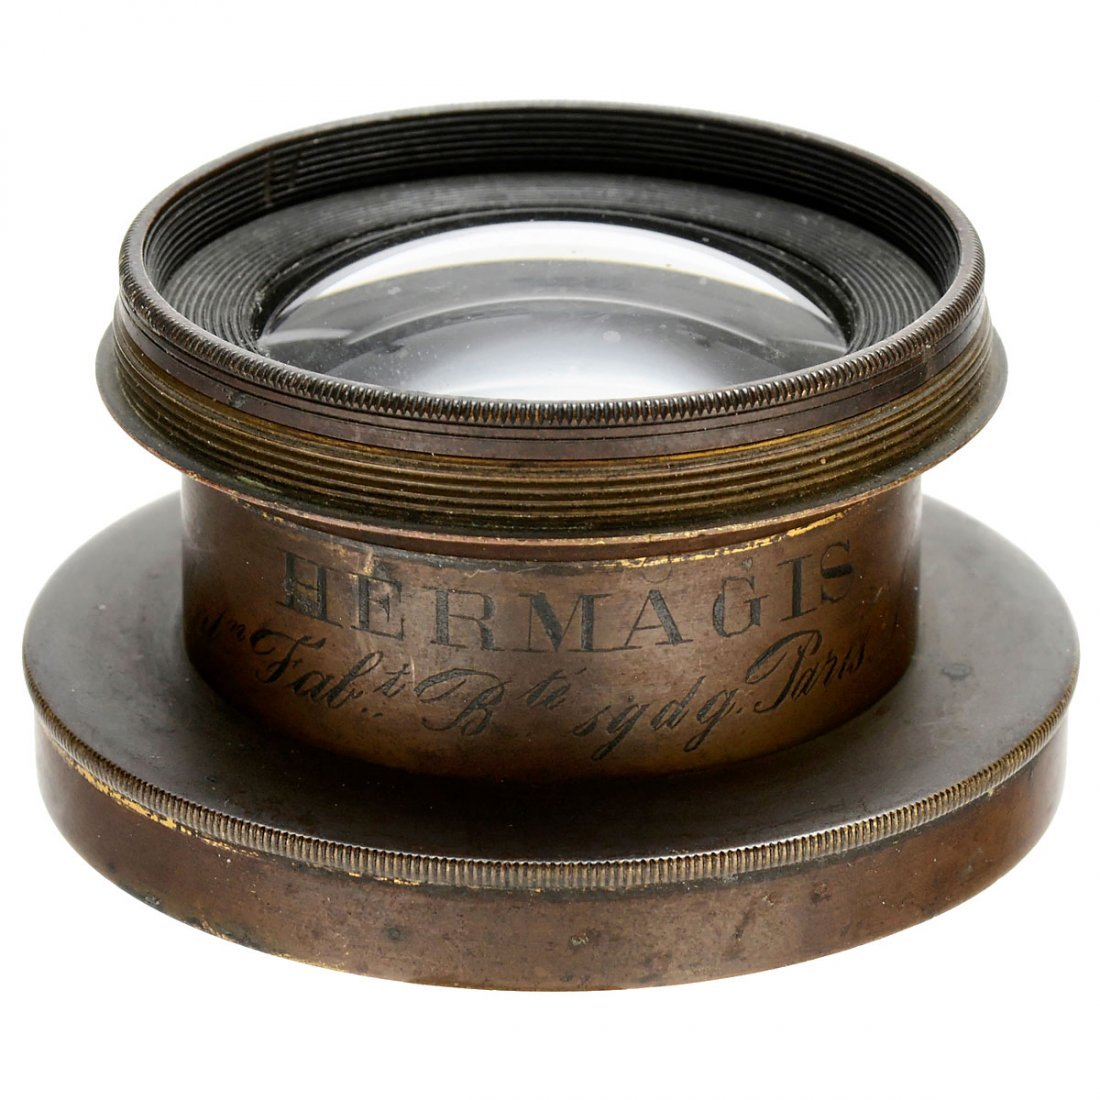 Globe Wide-Angle Lens by Hermagis, Paris, No. 18267, c.